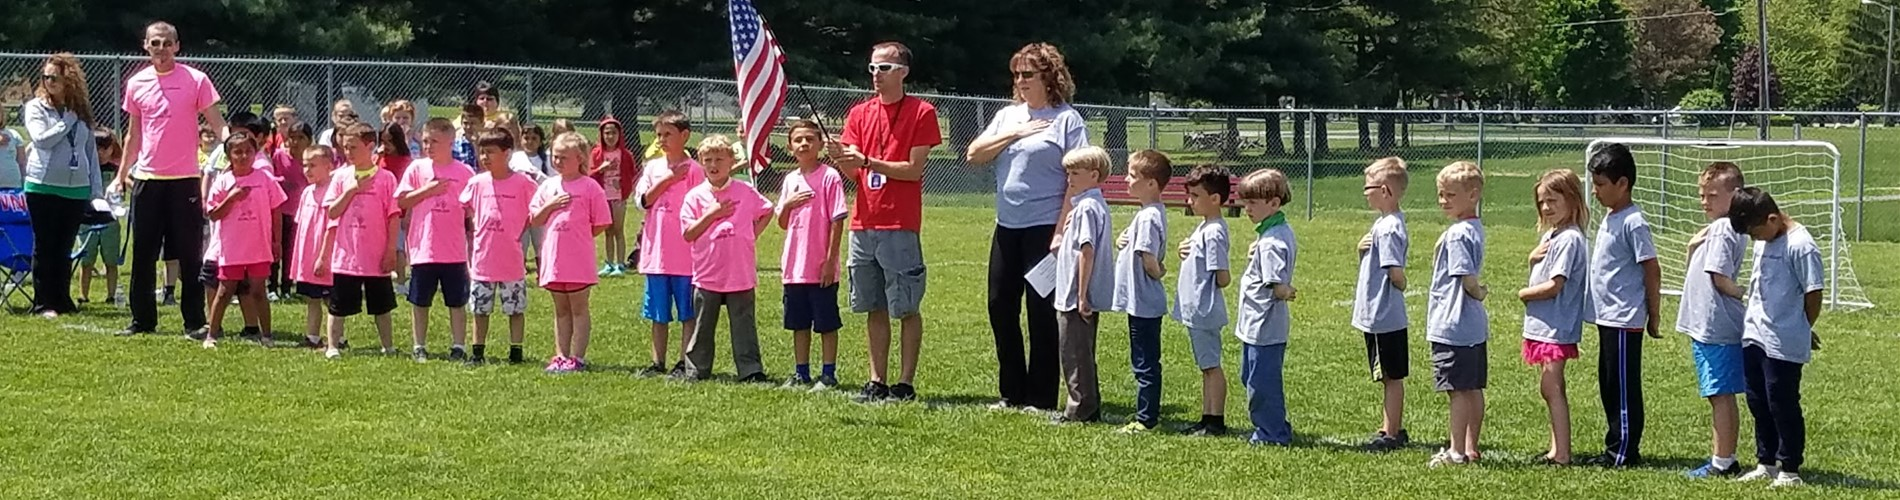 Mr. Shepherd's and Mrs. Garner's teams join in for the singing of the National Anthem prior to the start of the championship game.